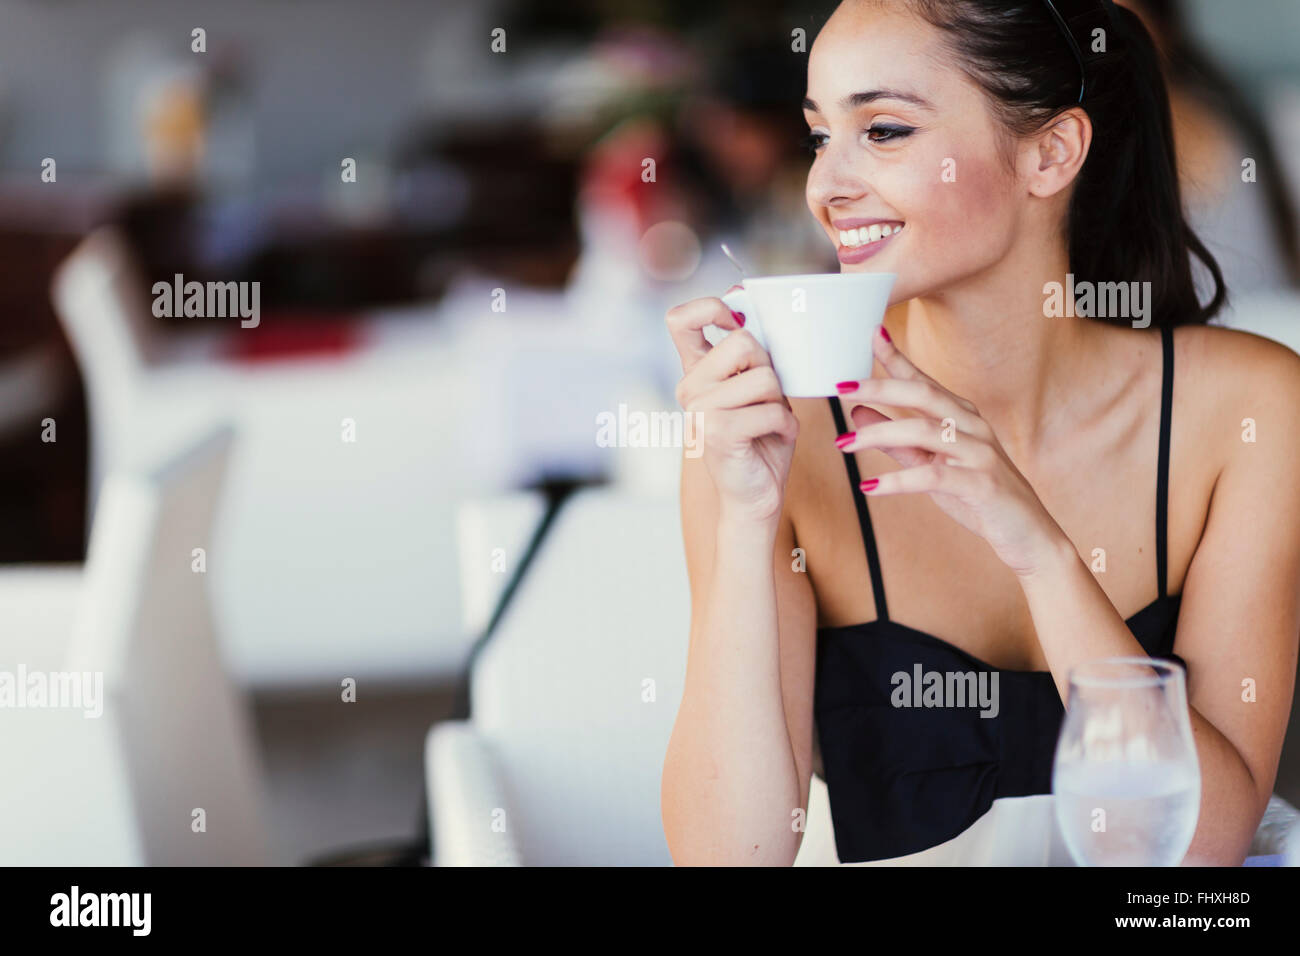 Beautiful woman drinking tea in restaurant while waiting for her meal - Stock Image